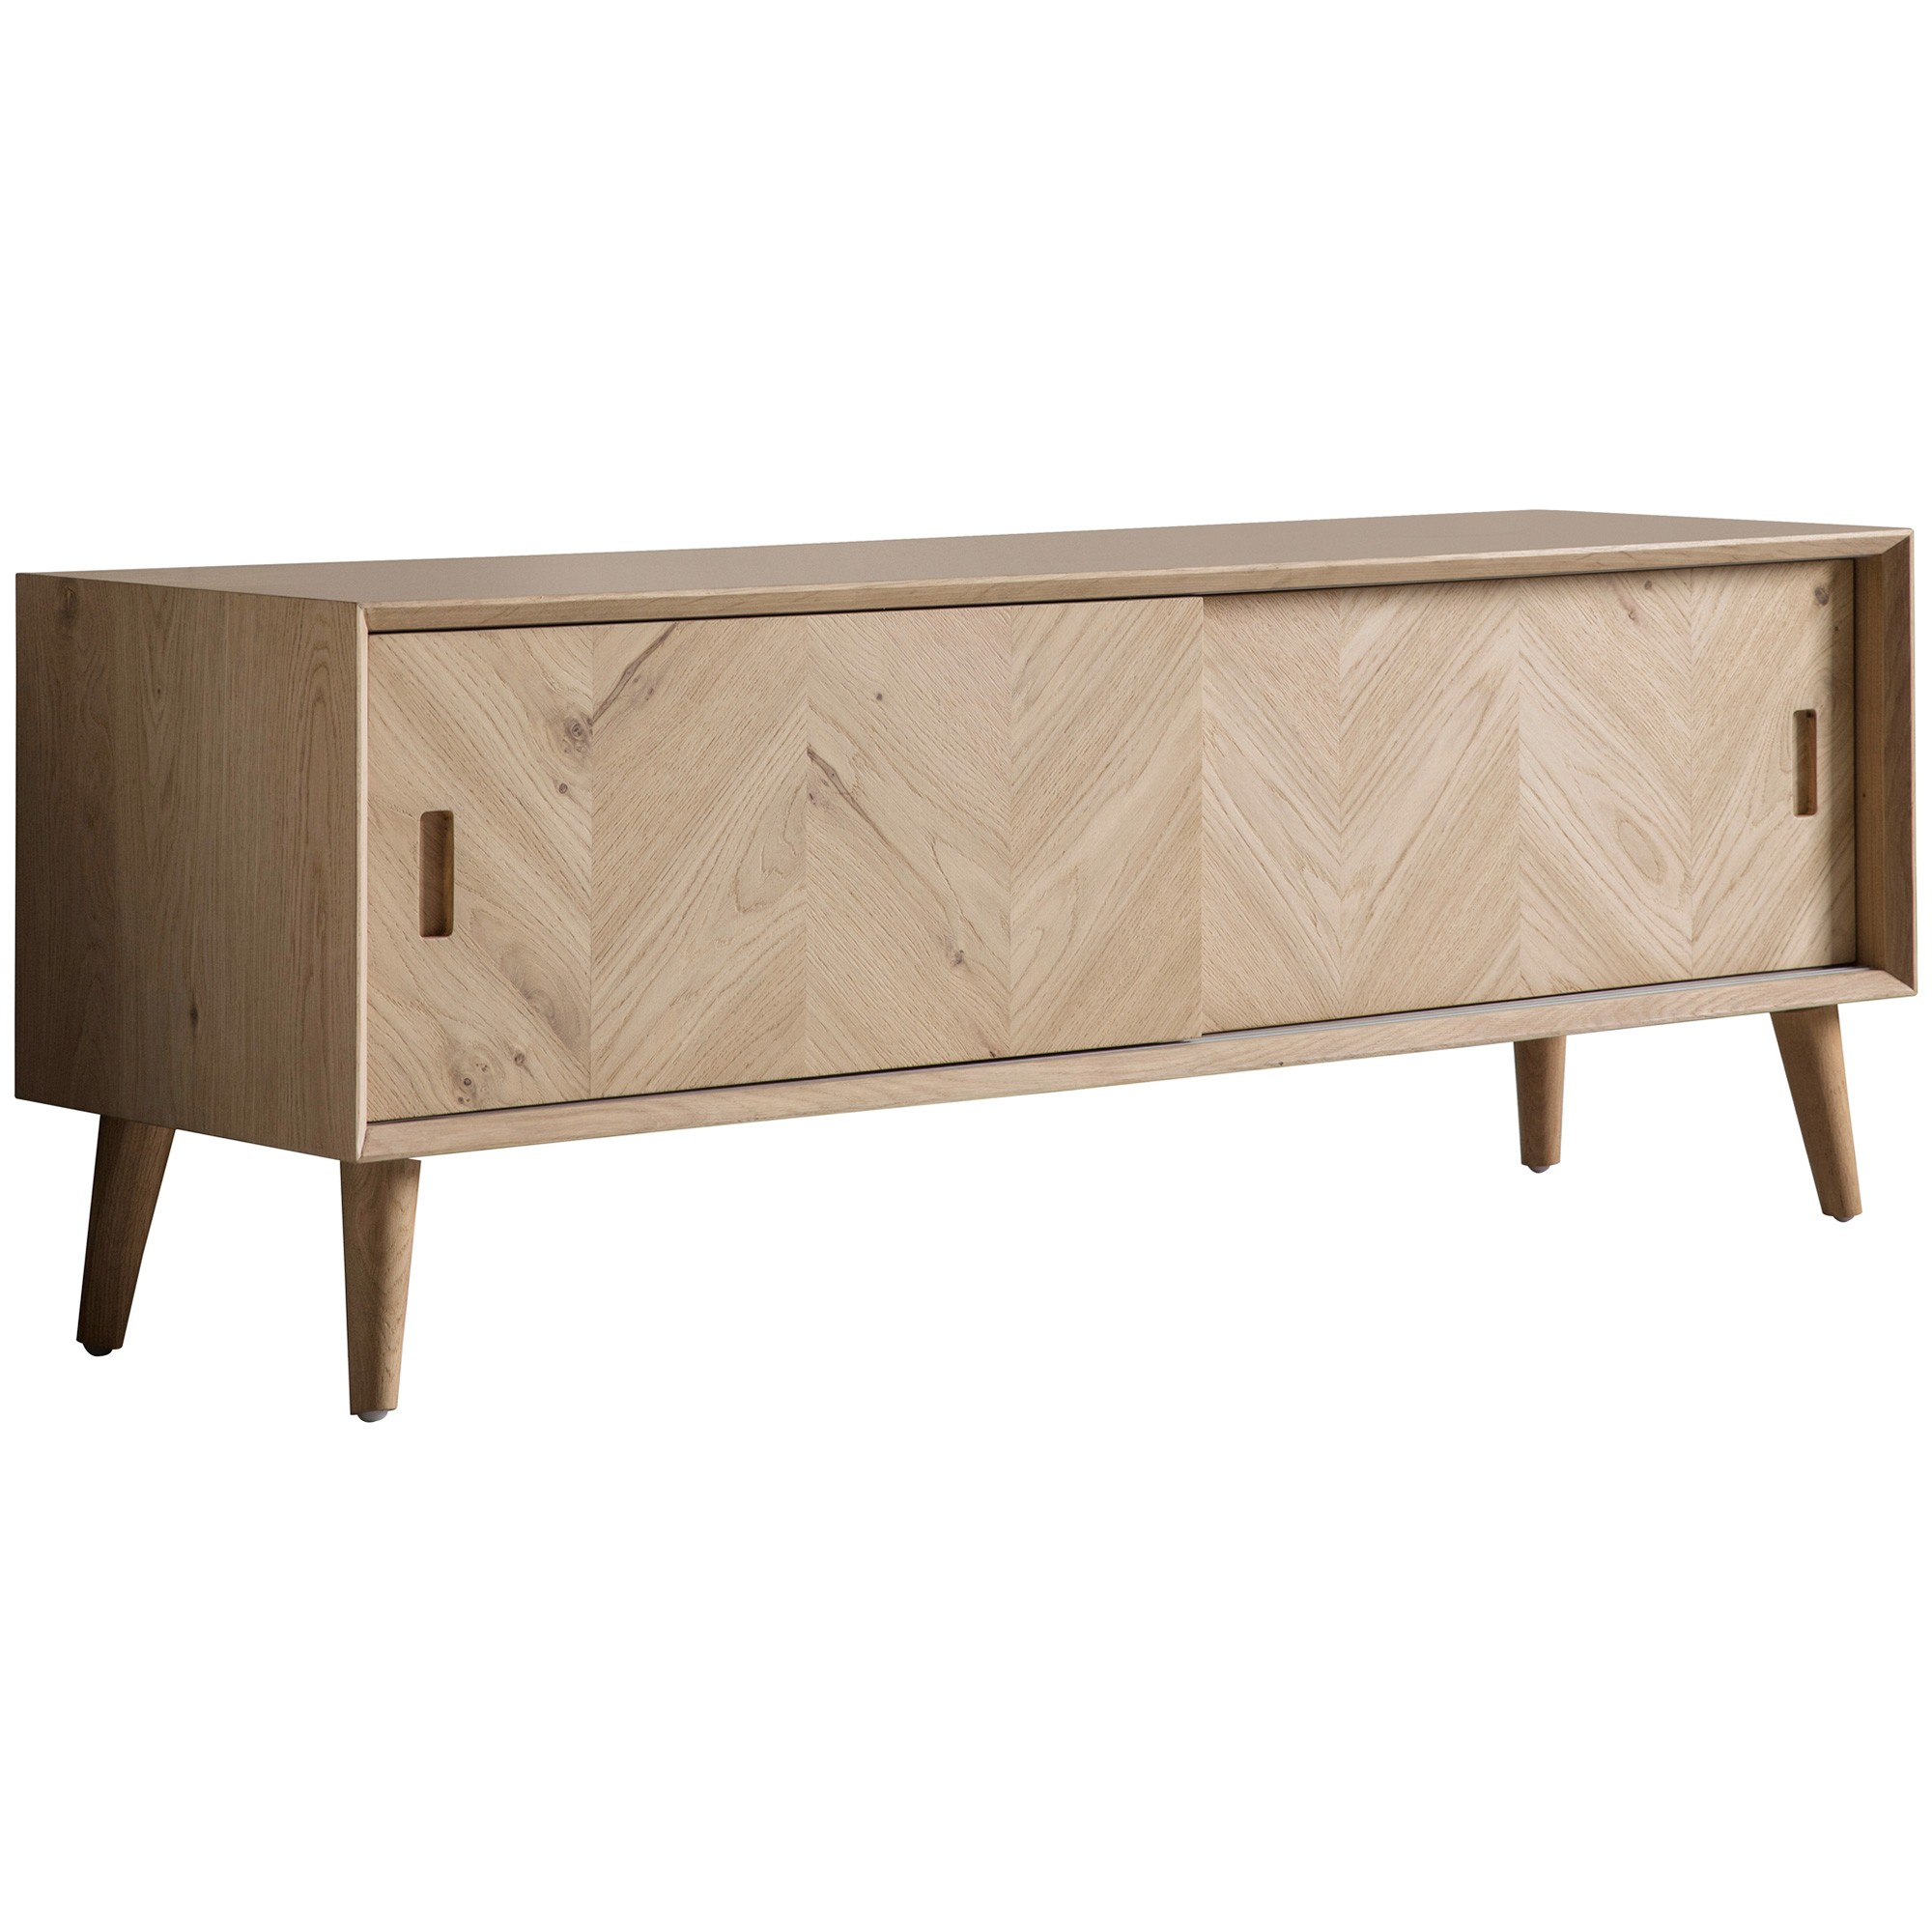 Maja Oak Timber Sliding Door TV Unit, 140cm